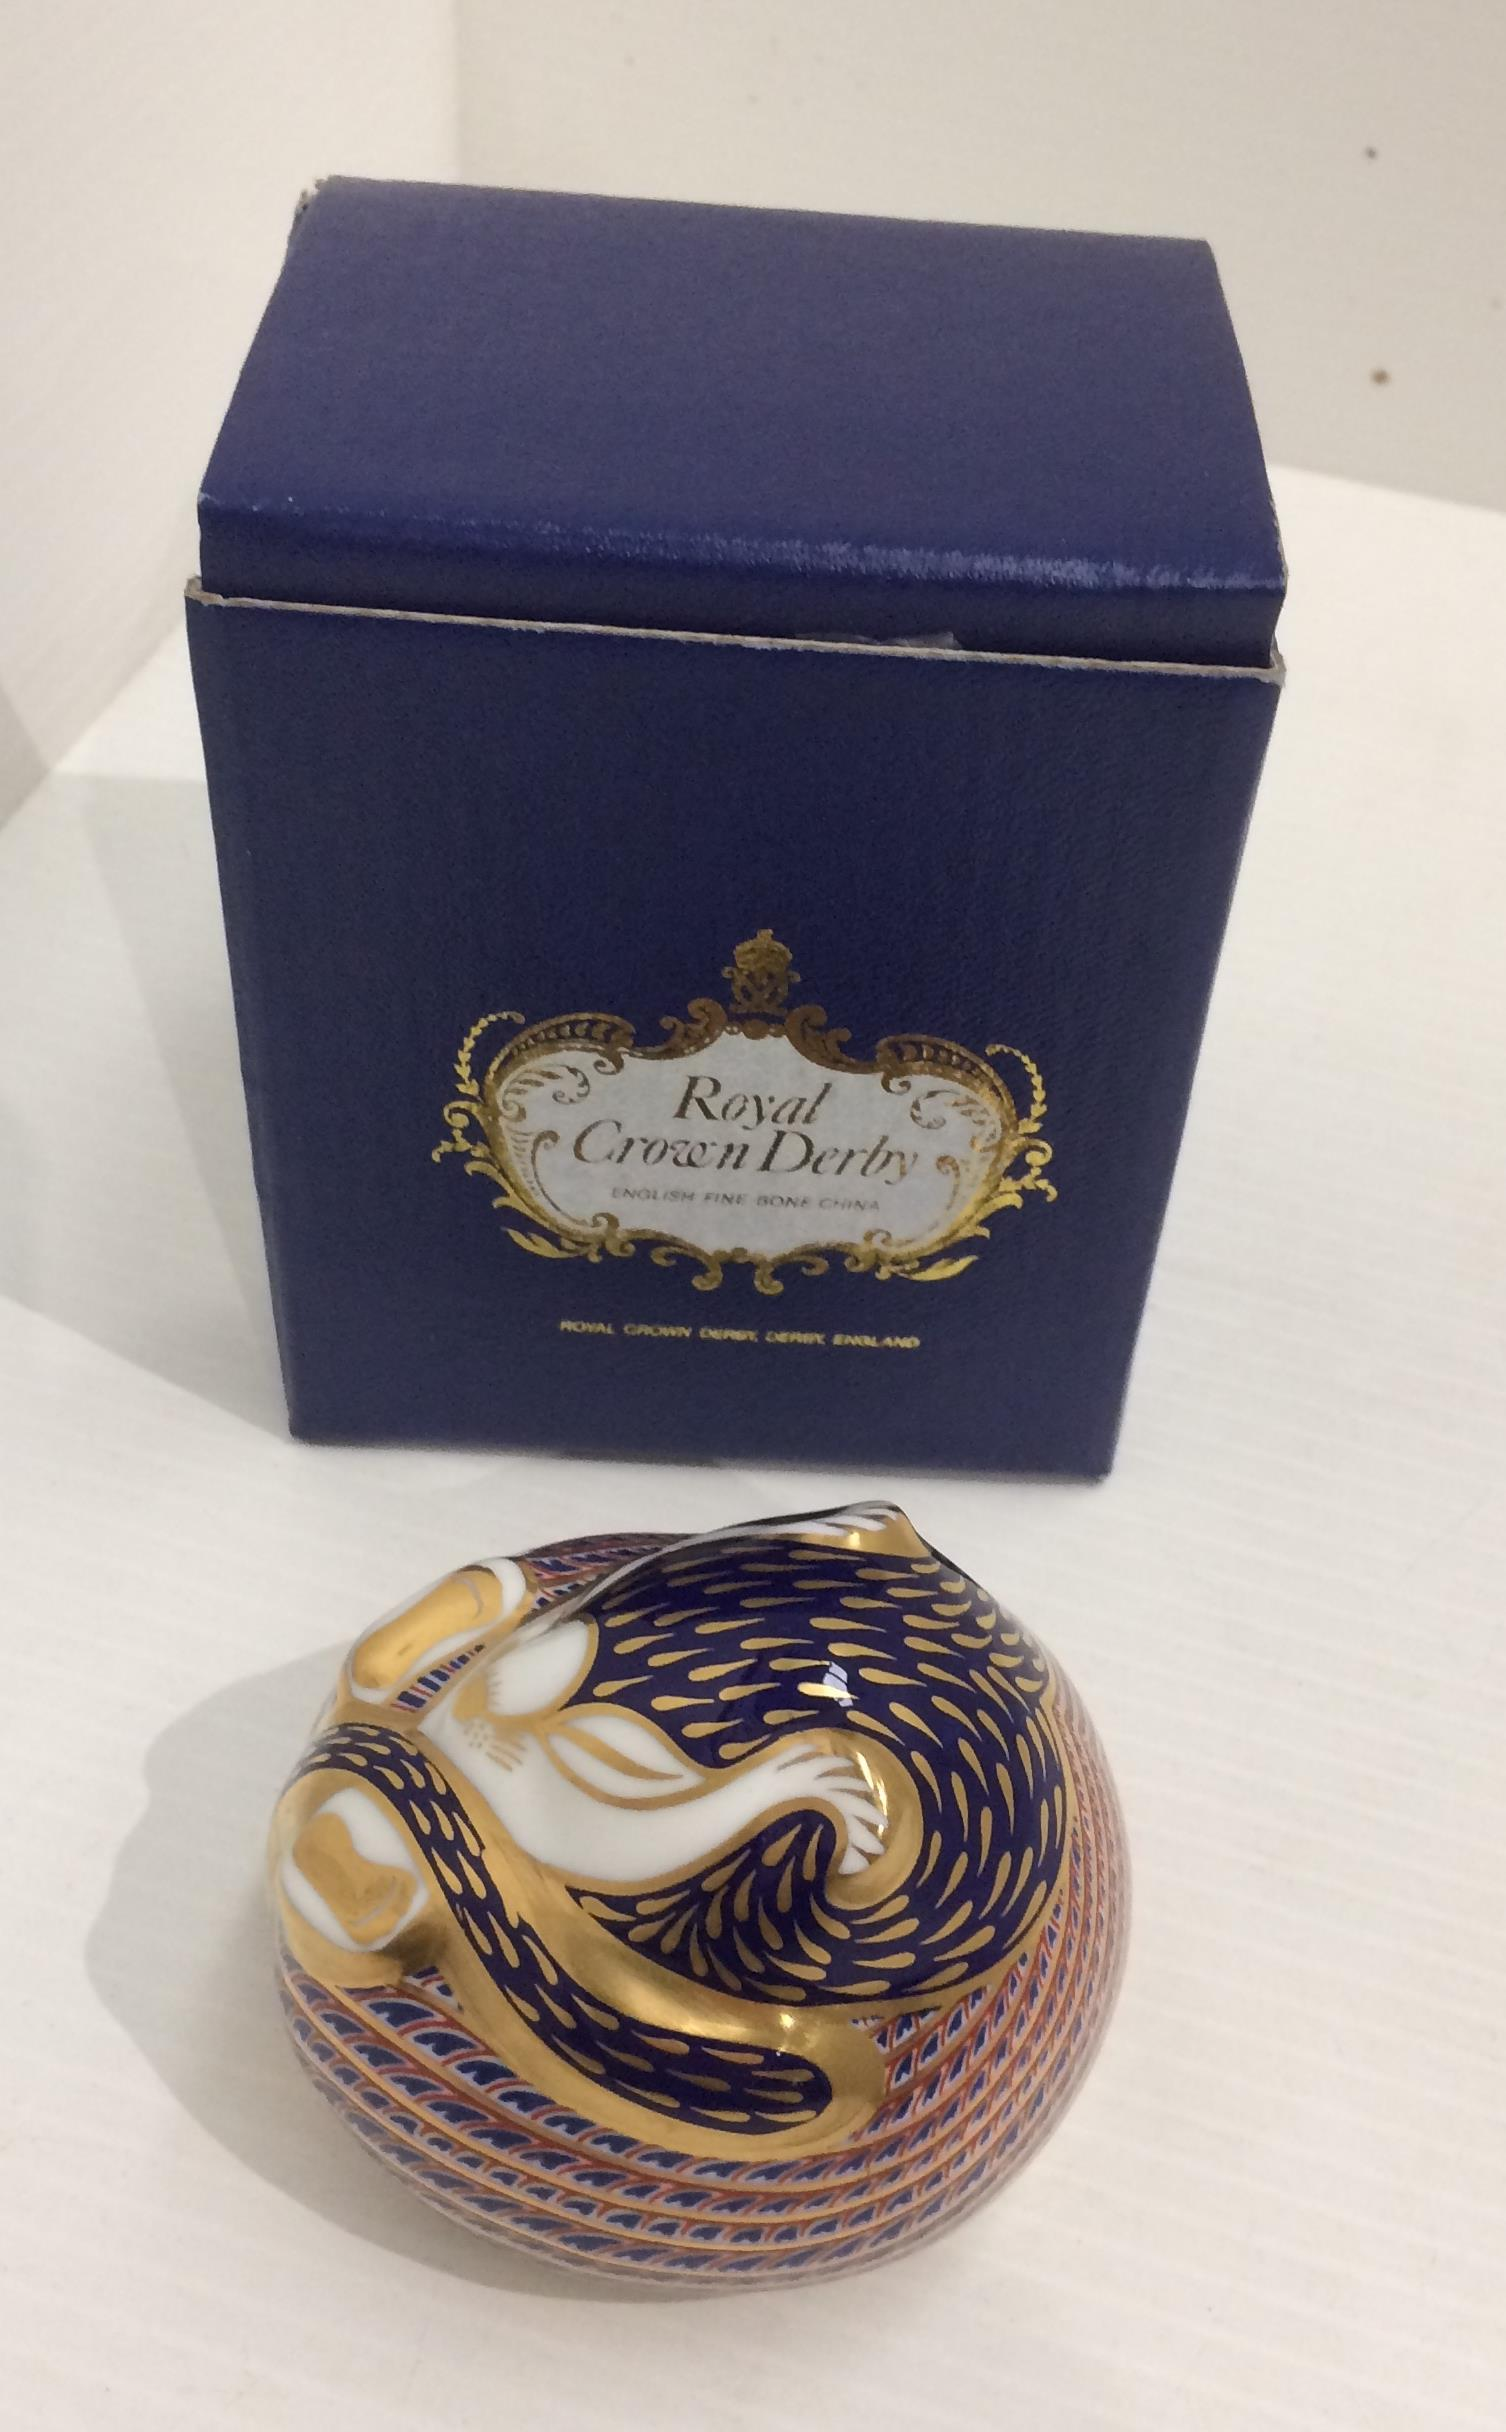 Lot 45 - A Royal Crown Derby bone china Imari patterned Dormouse paperweight - 8cm long,